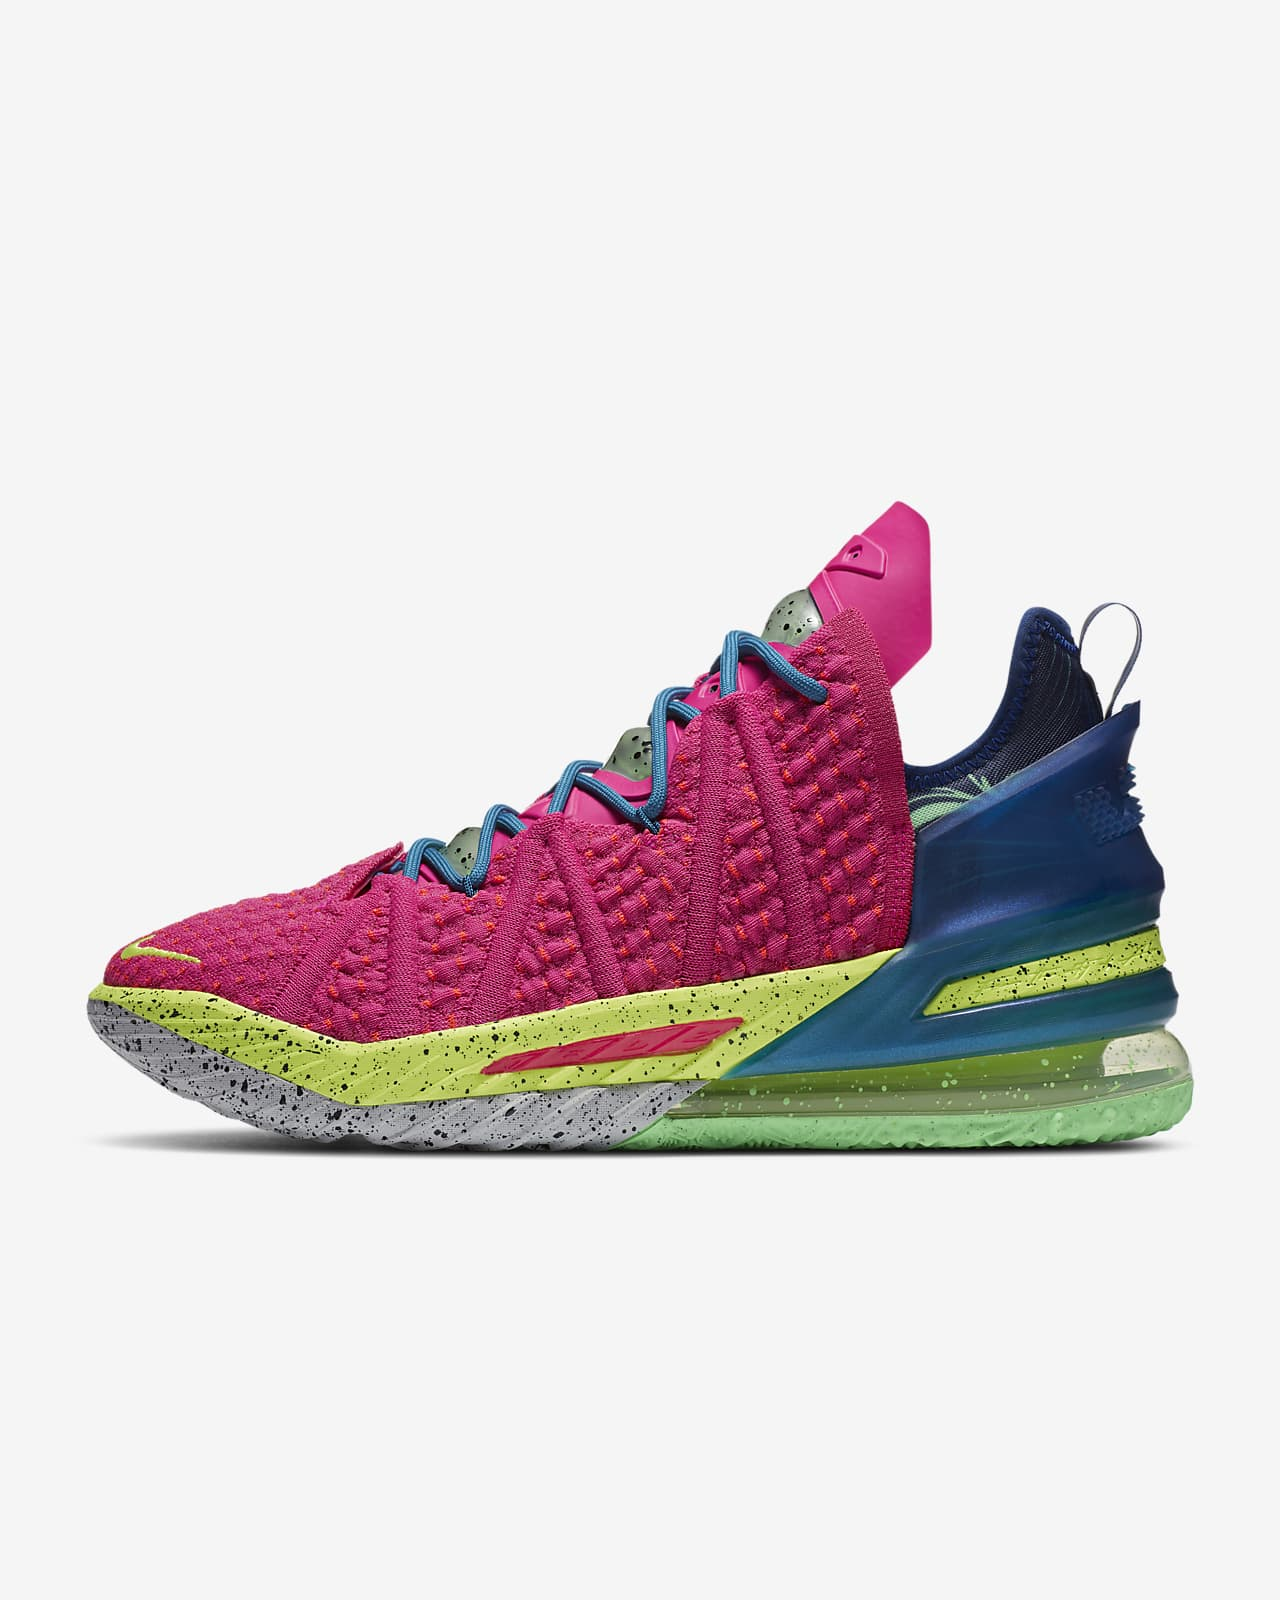 Chaussure de basketball LeBron 18 « Los Angeles By Night »